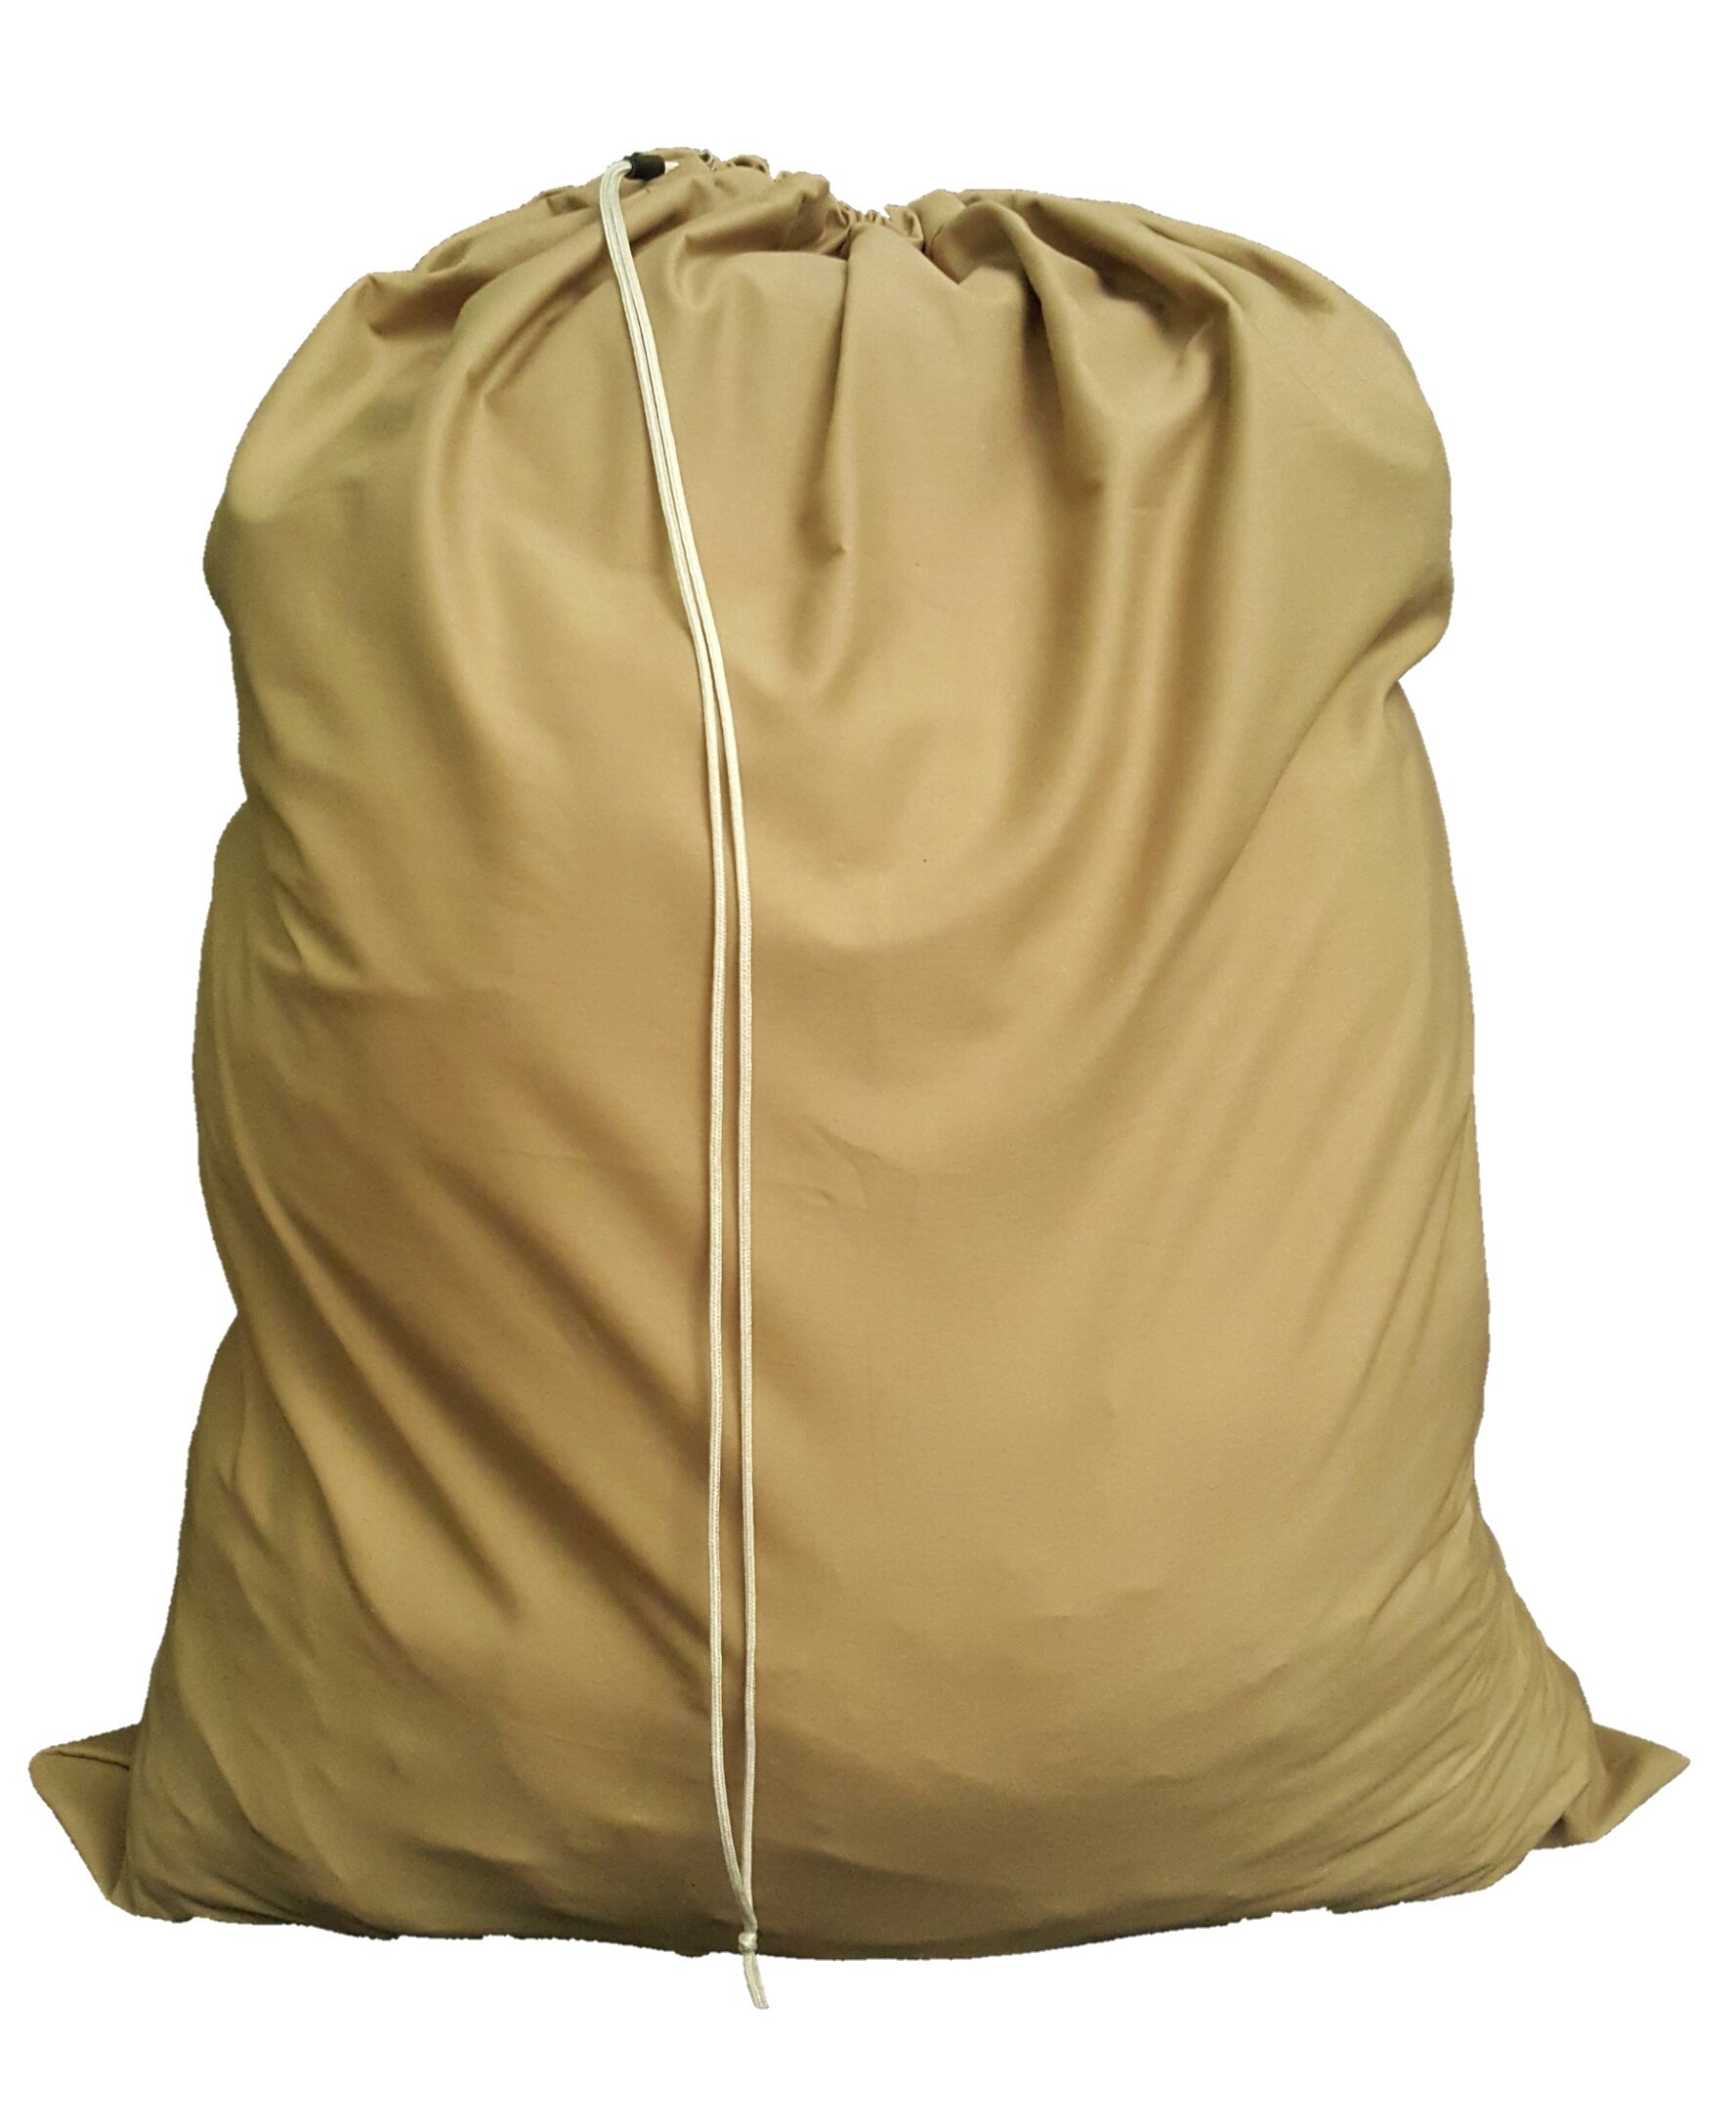 Heavy Duty 30in x 40in Canvas Laundry Bag - Made in the USA